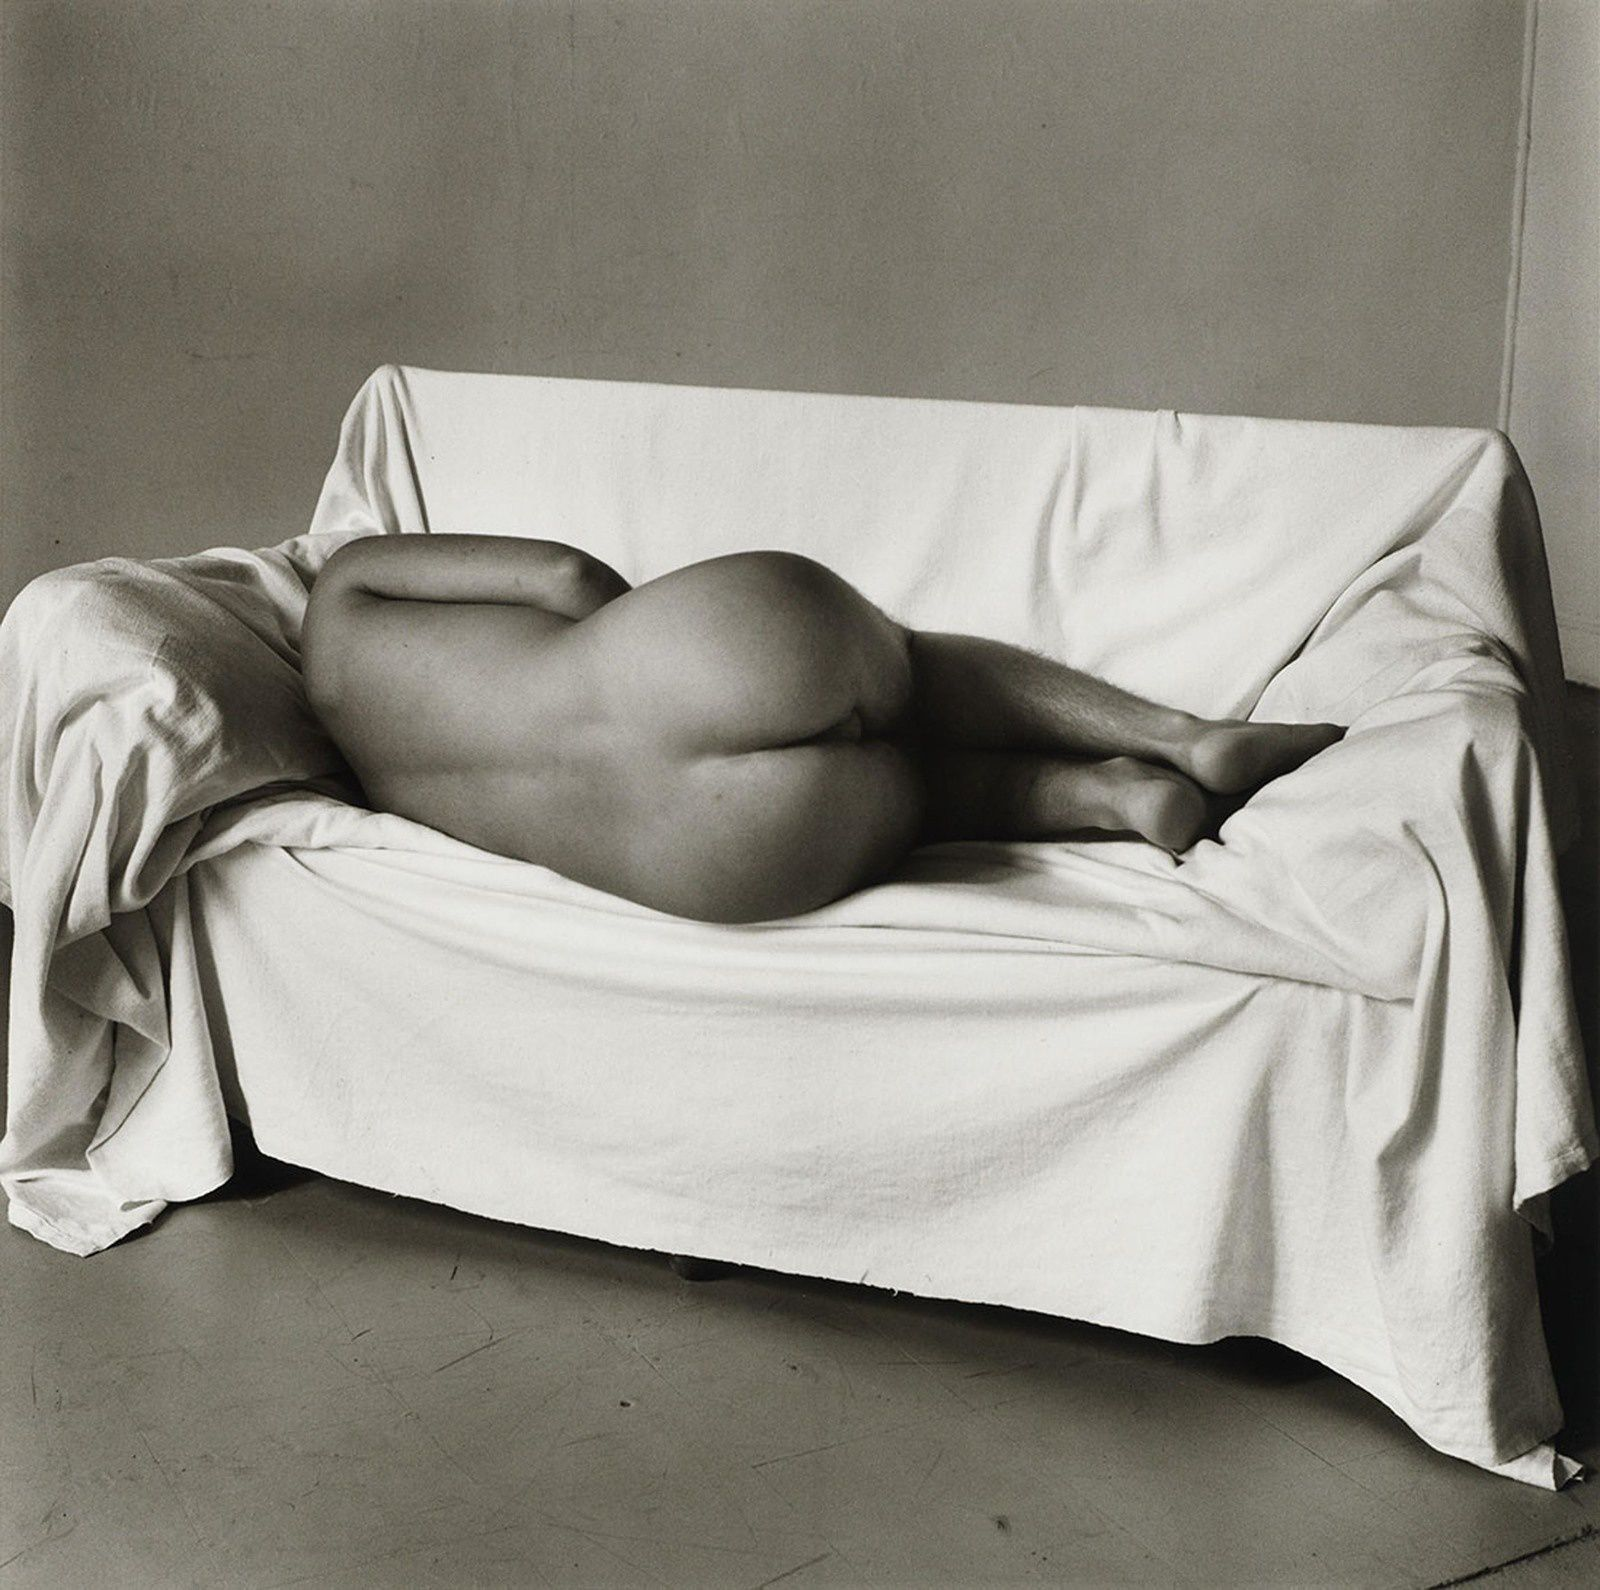 Reclining Nude on Couch 1978 Peter Hujar Tirage gélatino-argentique, The Morgan Library & Museum, achat en 2013 grâce au Charina Endowment Fund © Peter Hujar Archive, LLC, courtesy Pace/MacGill Gallery, New York and Fraenkel Gallery, San Francisco